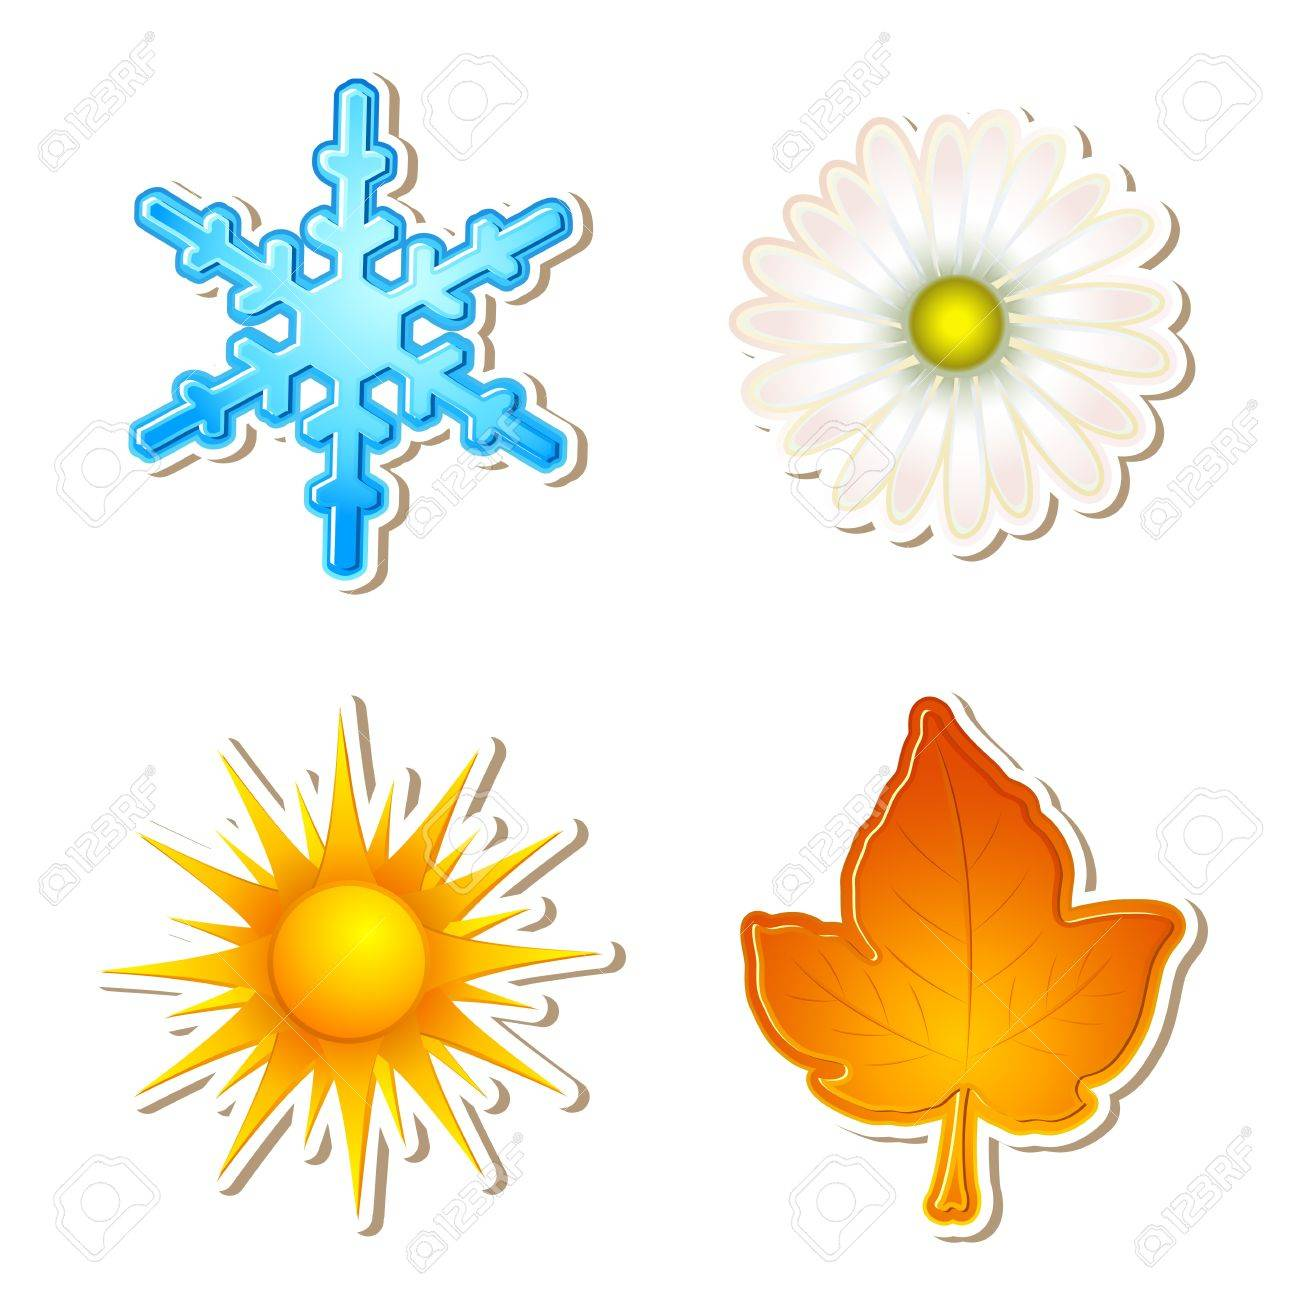 illustration of snowflake,daisy,sun and maple leaf showing four season Stock Vector - 8977383